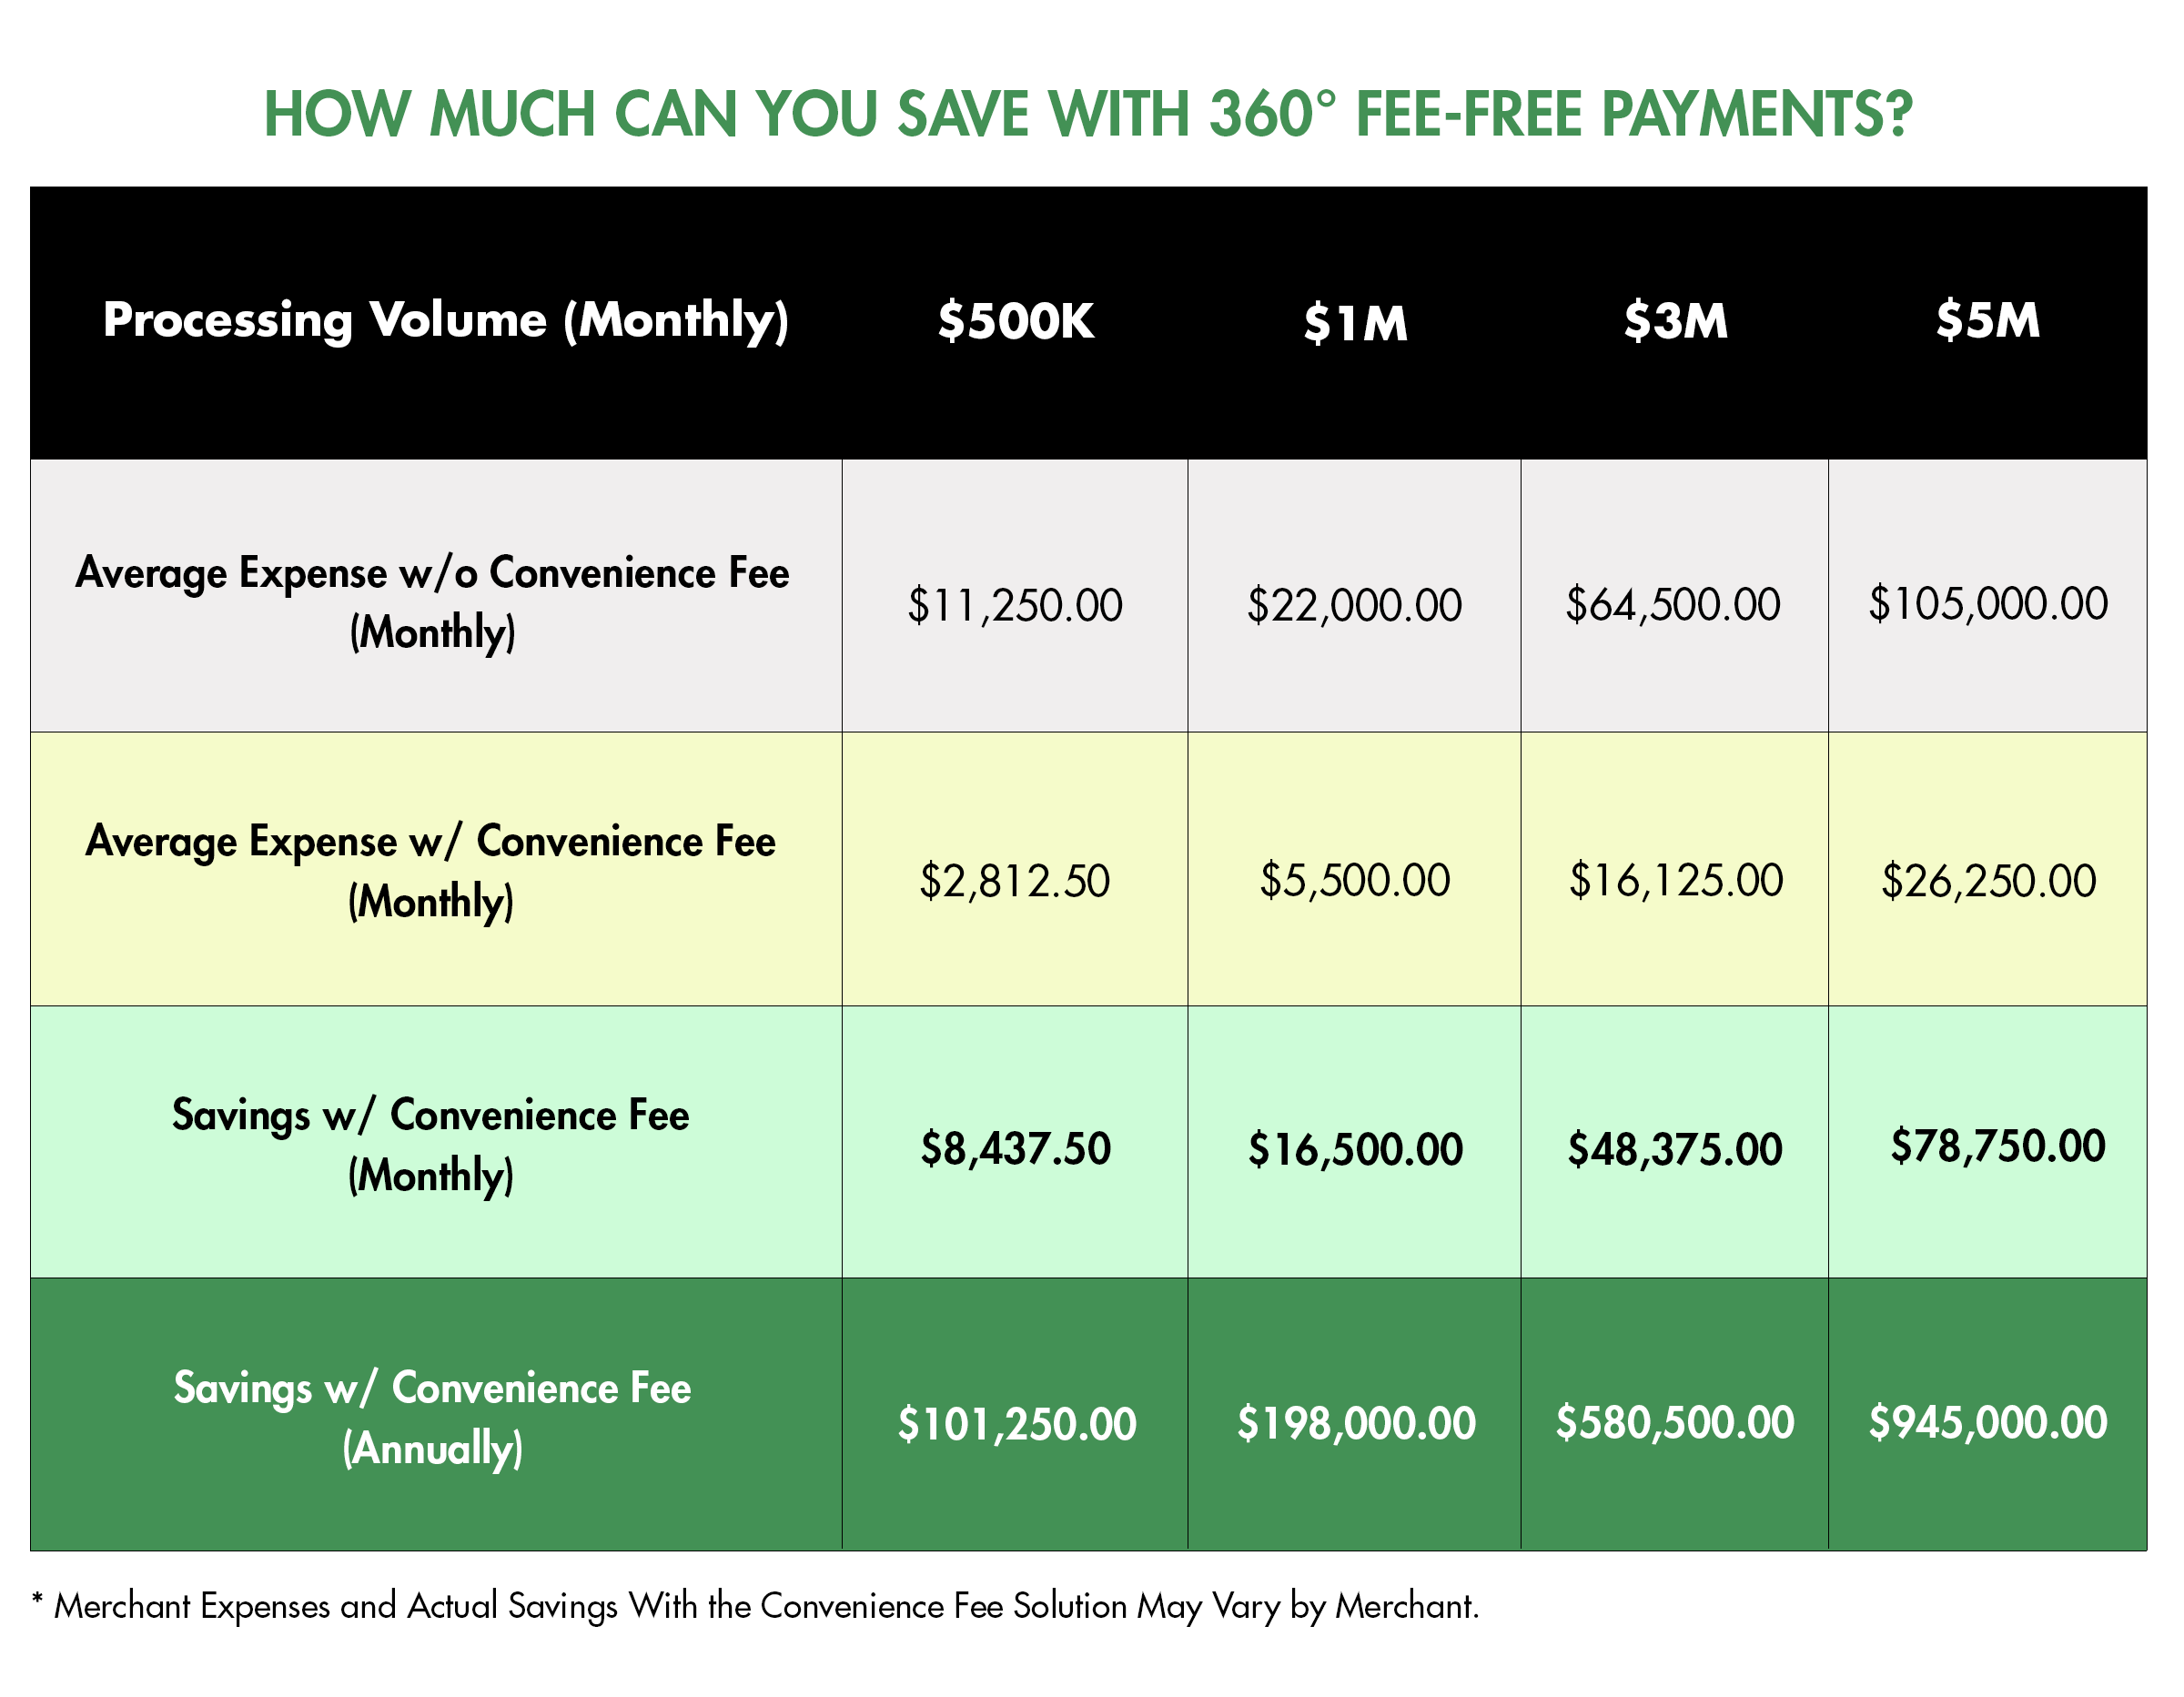 You Can Reduce Your Payment Processing Costs by 75% with a Convenience Fee Solution from Payscout